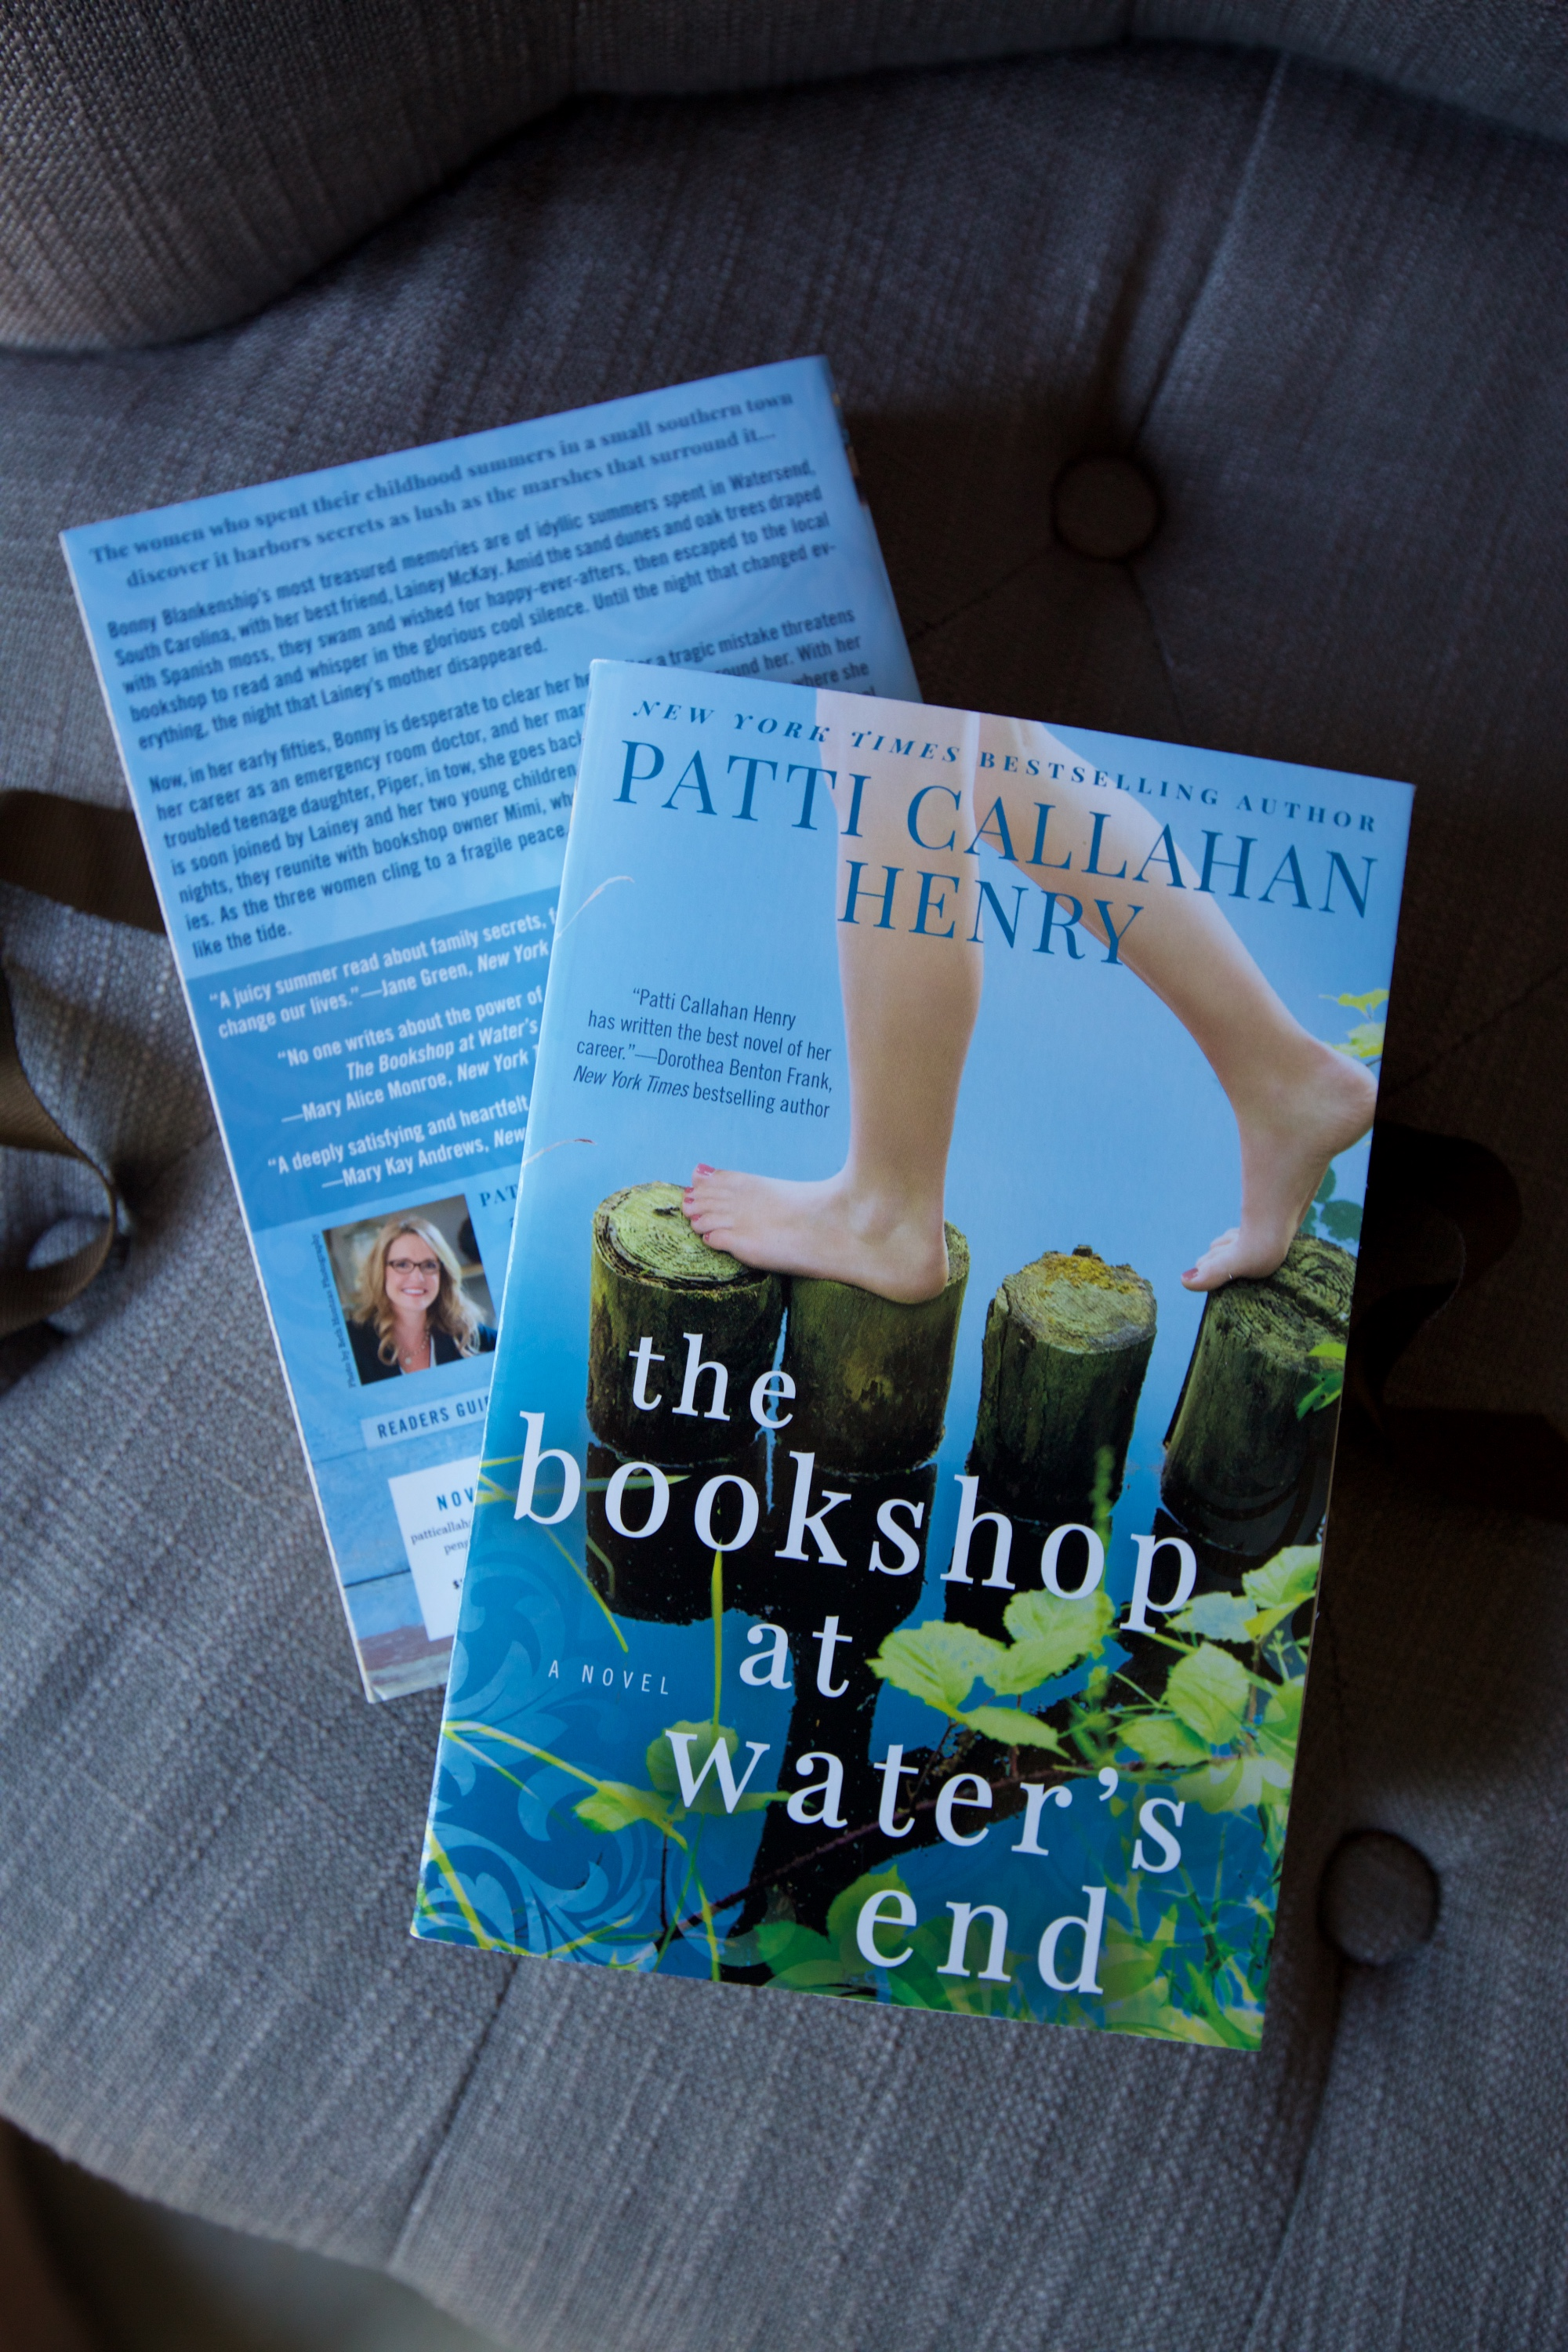 06-10-17 the bookshop at water's end 253.jpg